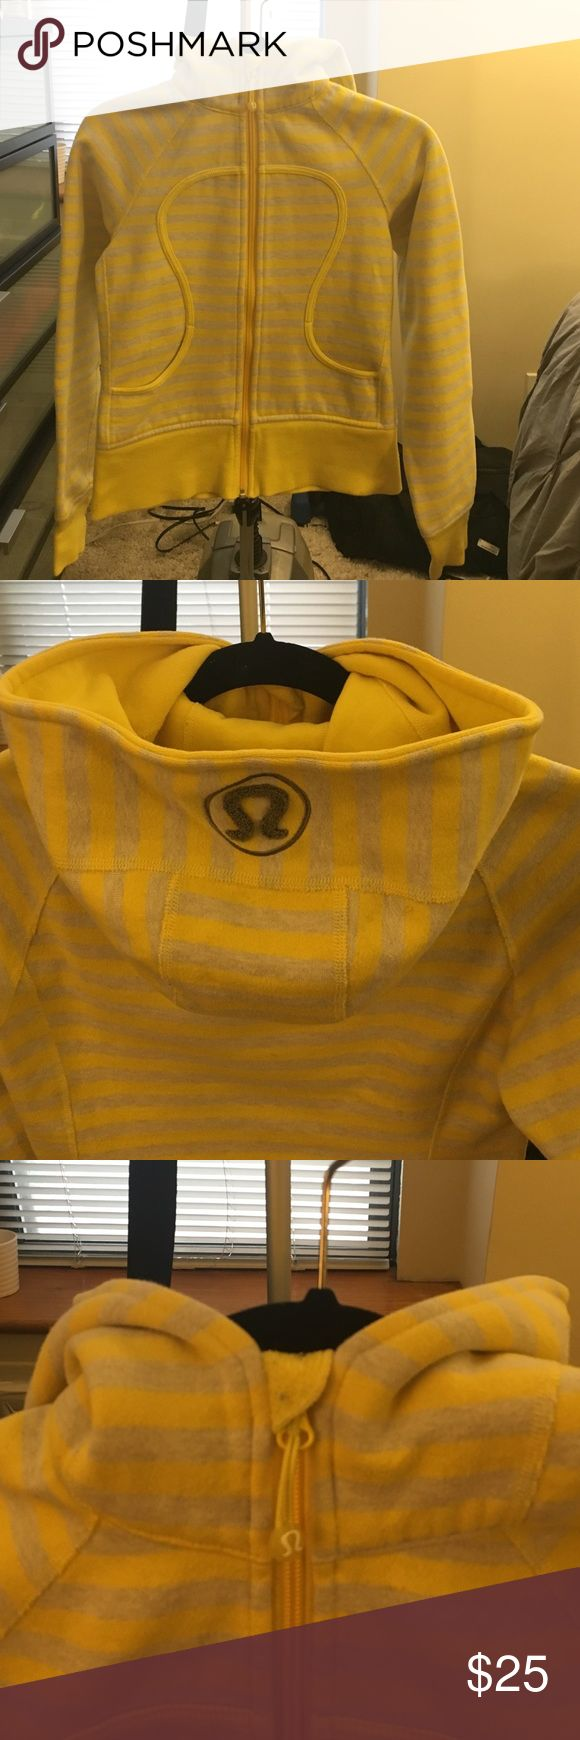 Lululemon Scuba Hoodie Yellow and grey stripped lululemon scuba hoodie. In great condition! Older version without monkey holes and shorter length perfect for petite women! lululemon athletica Tops Sweatshirts & Hoodies